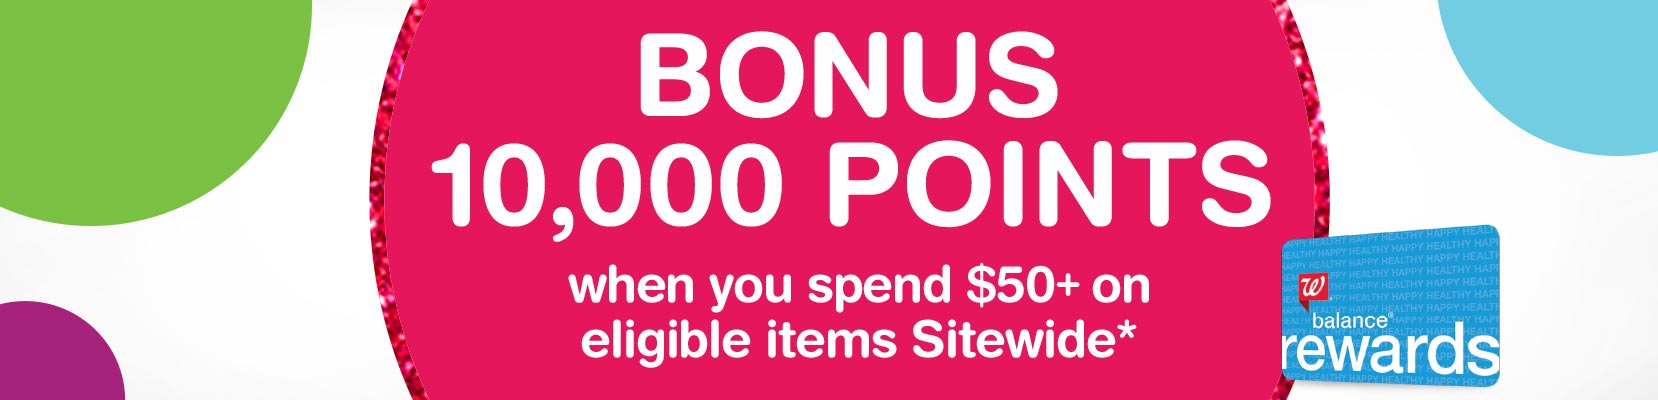 Bonus 10,000 Points when you spend $50+ on eligible items Sitewide.* Balance(R) Rewards.